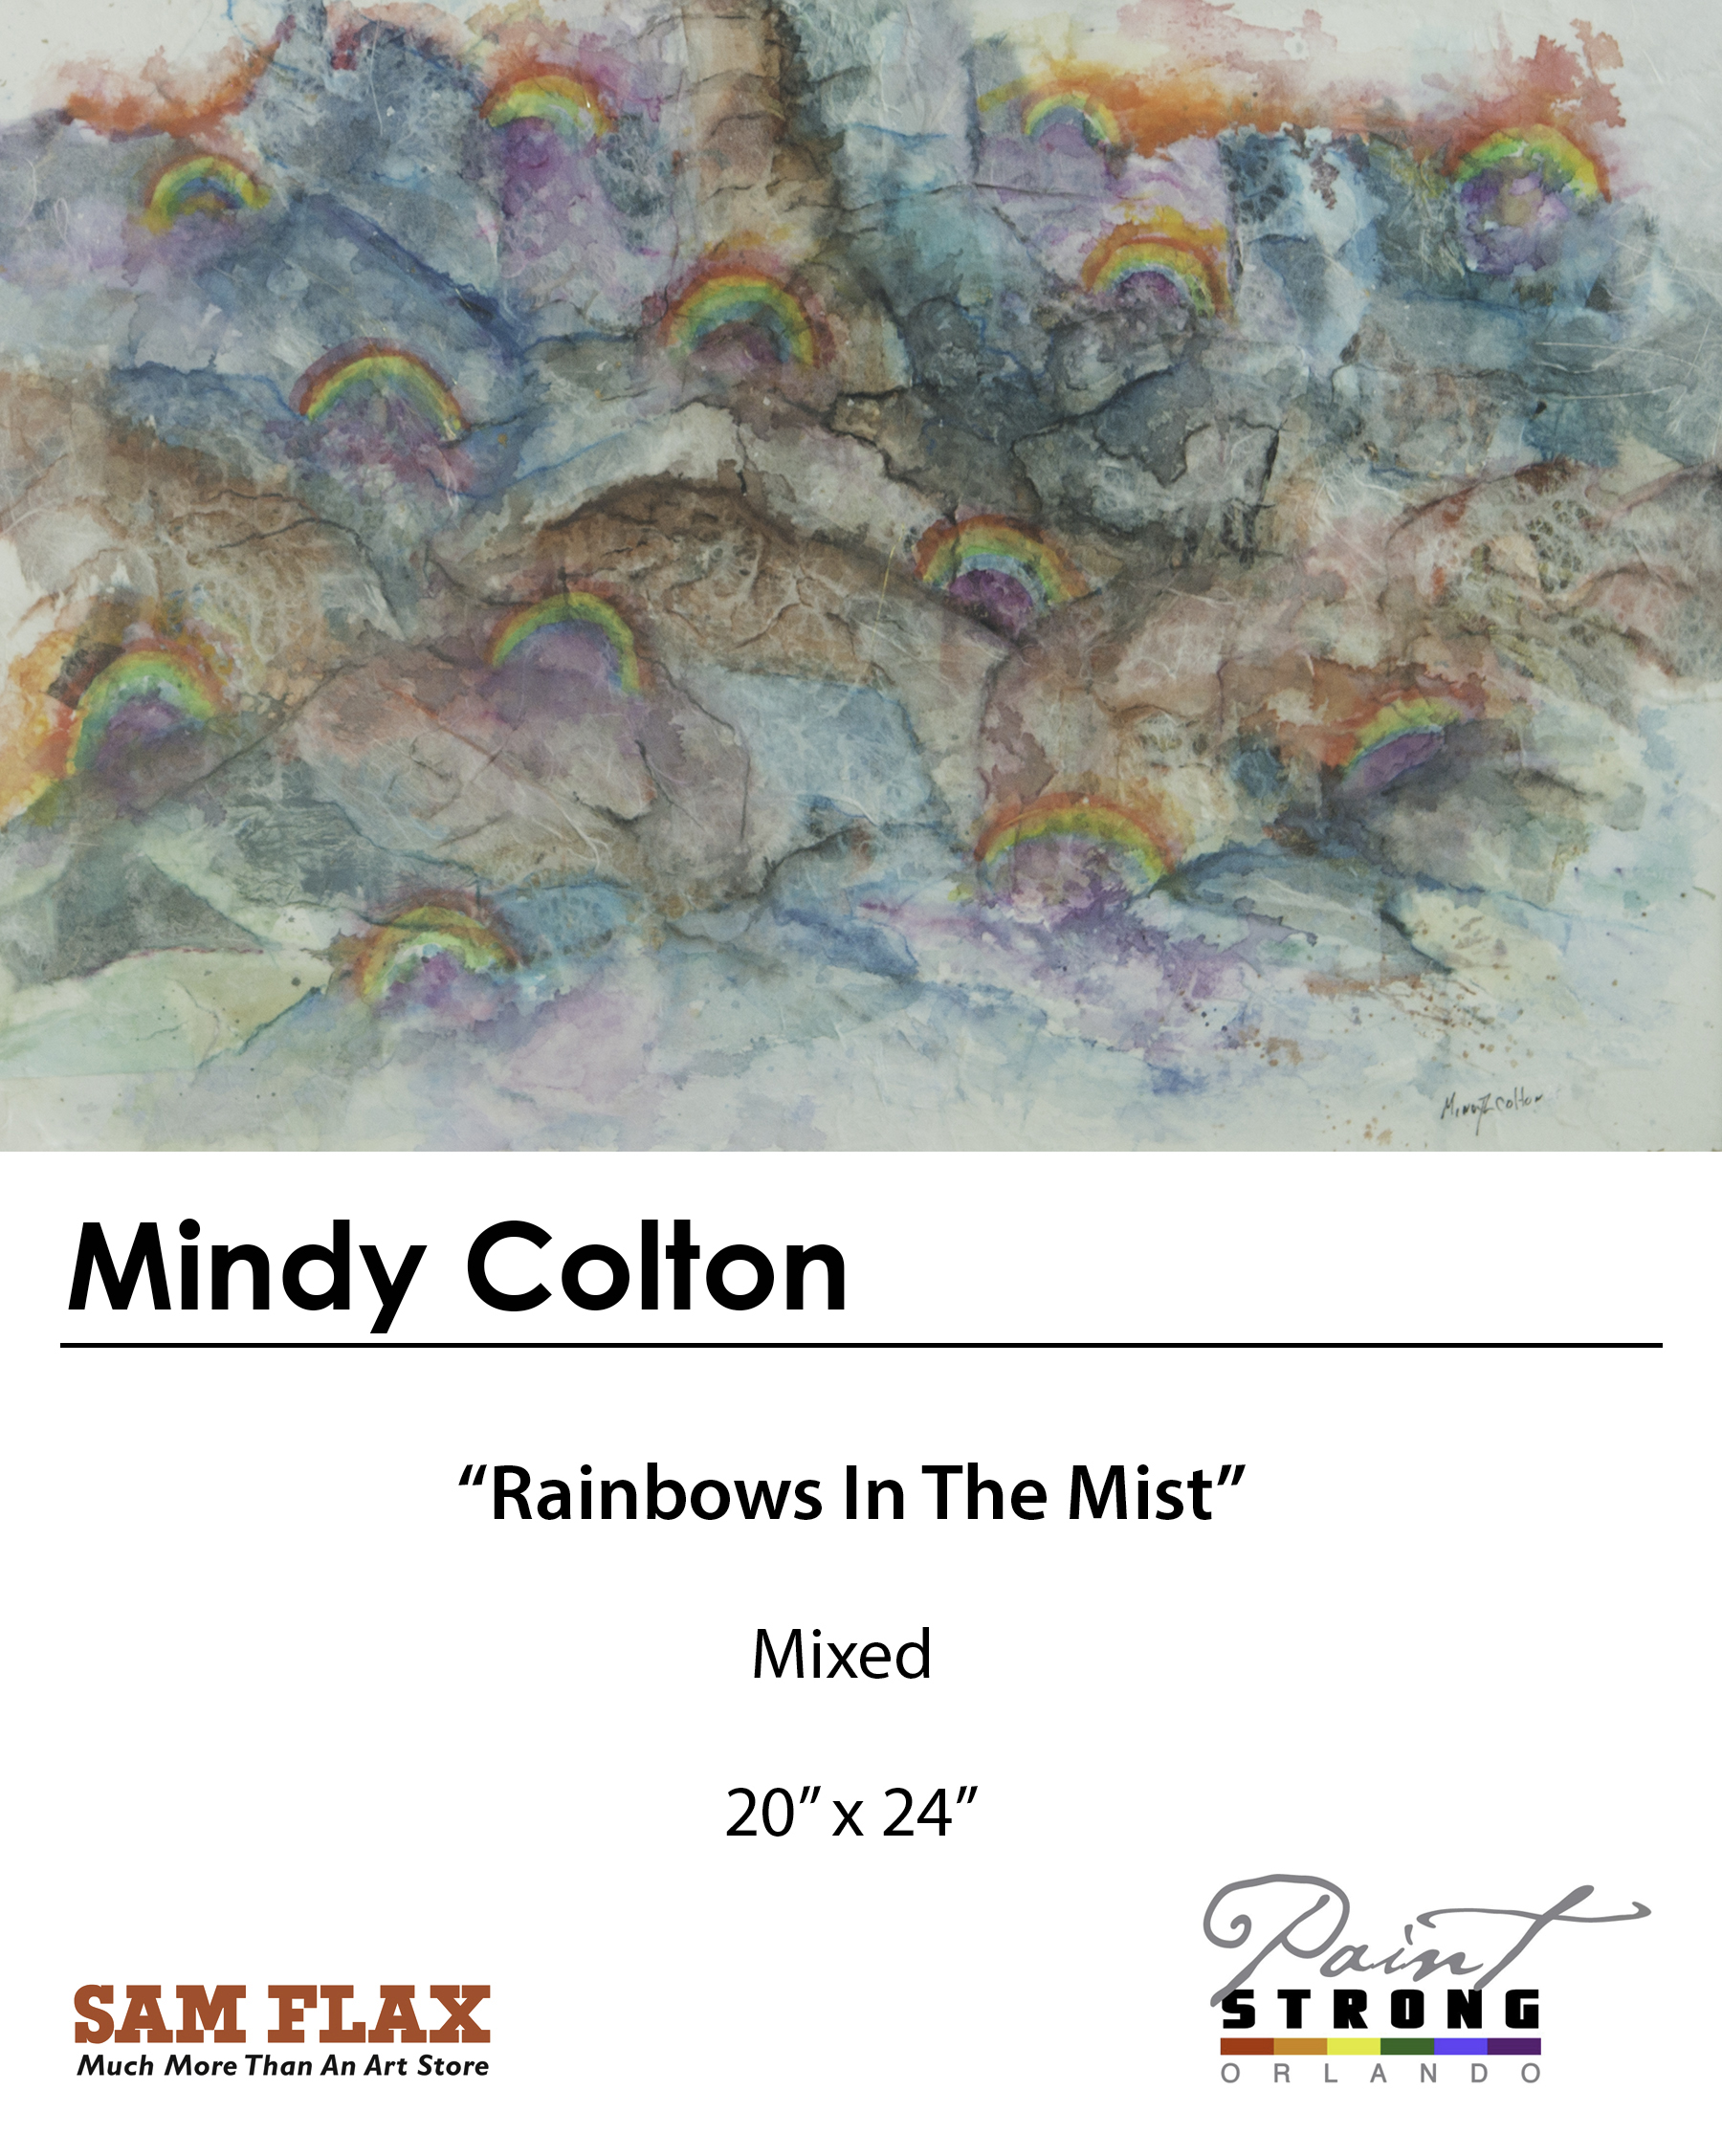 Mindy Colton